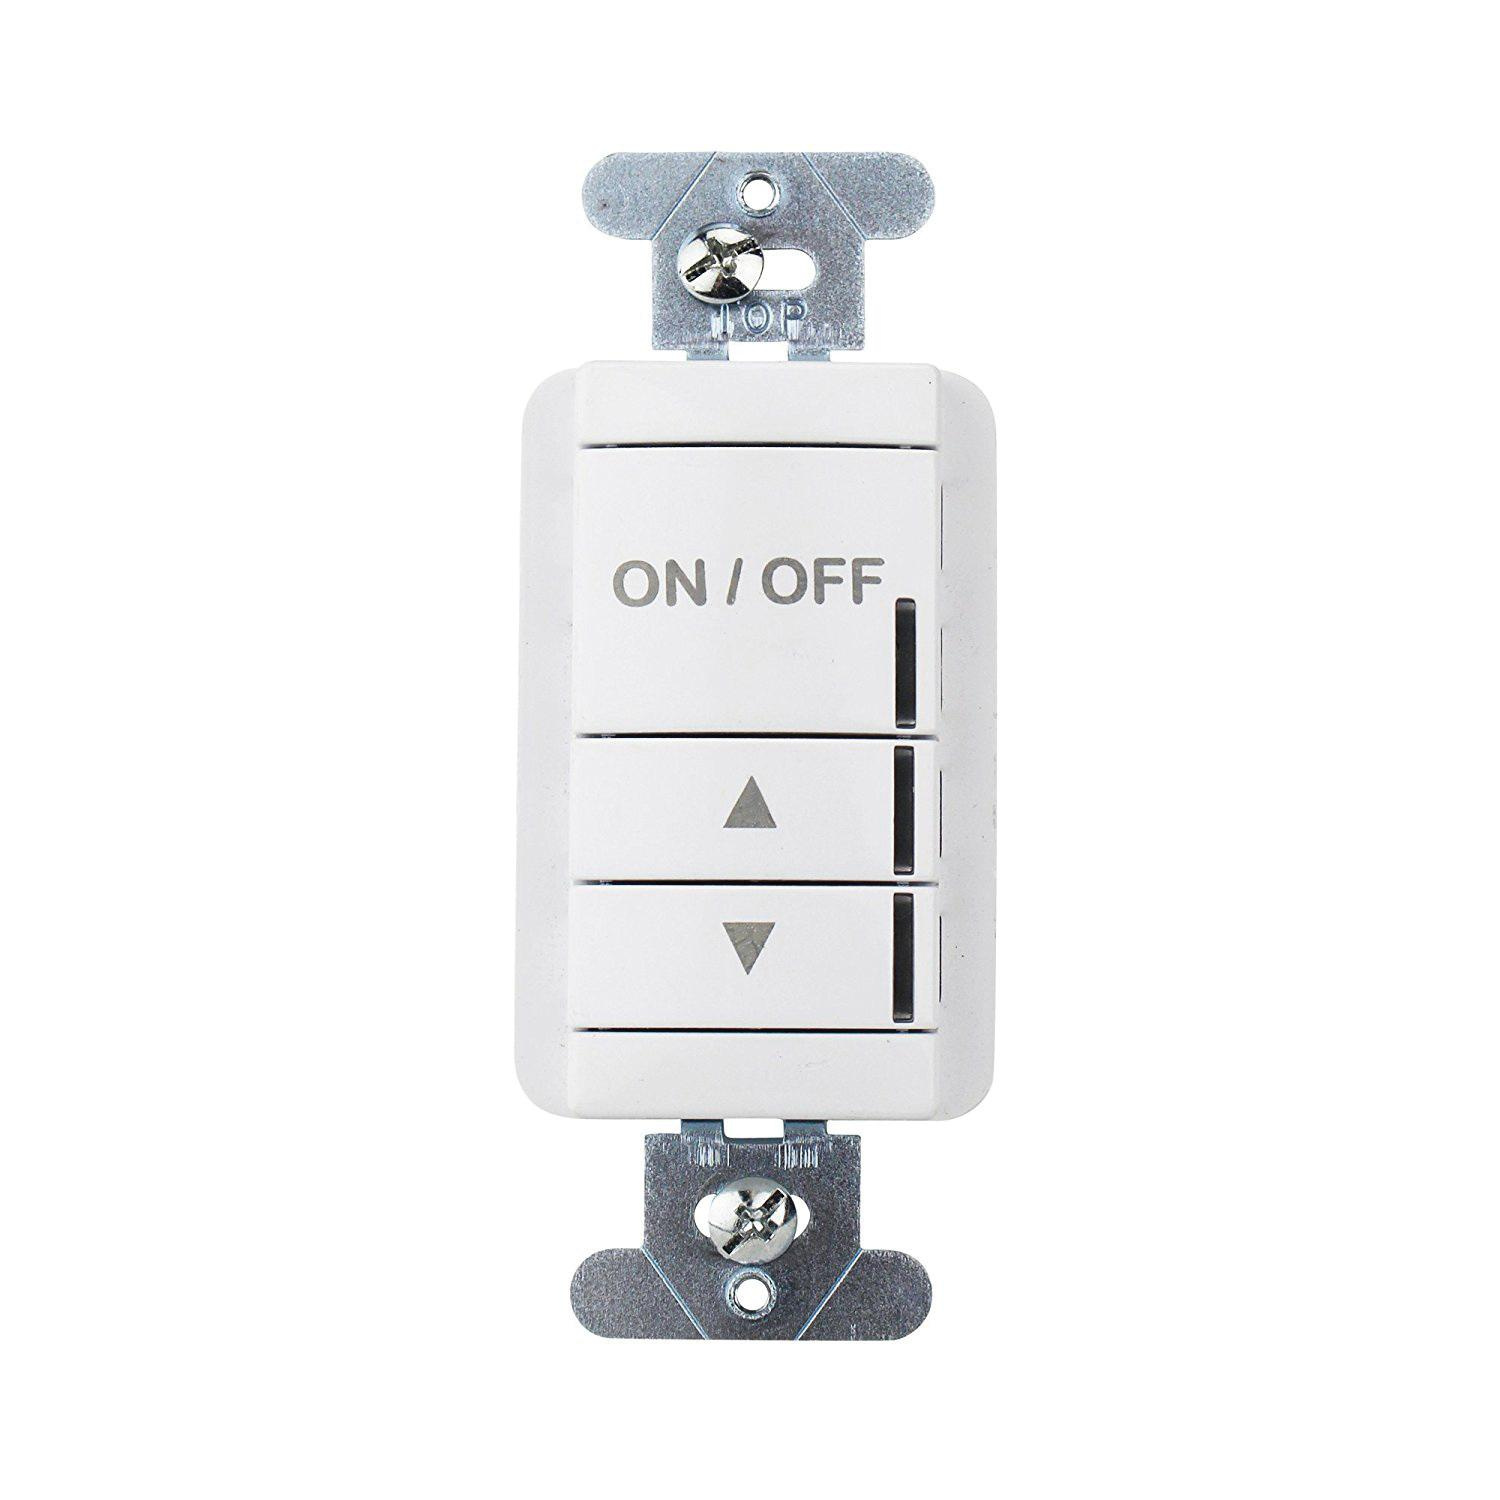 Lithonia Lighting Npodm 2p Dx Wh Single Gang Switch Box